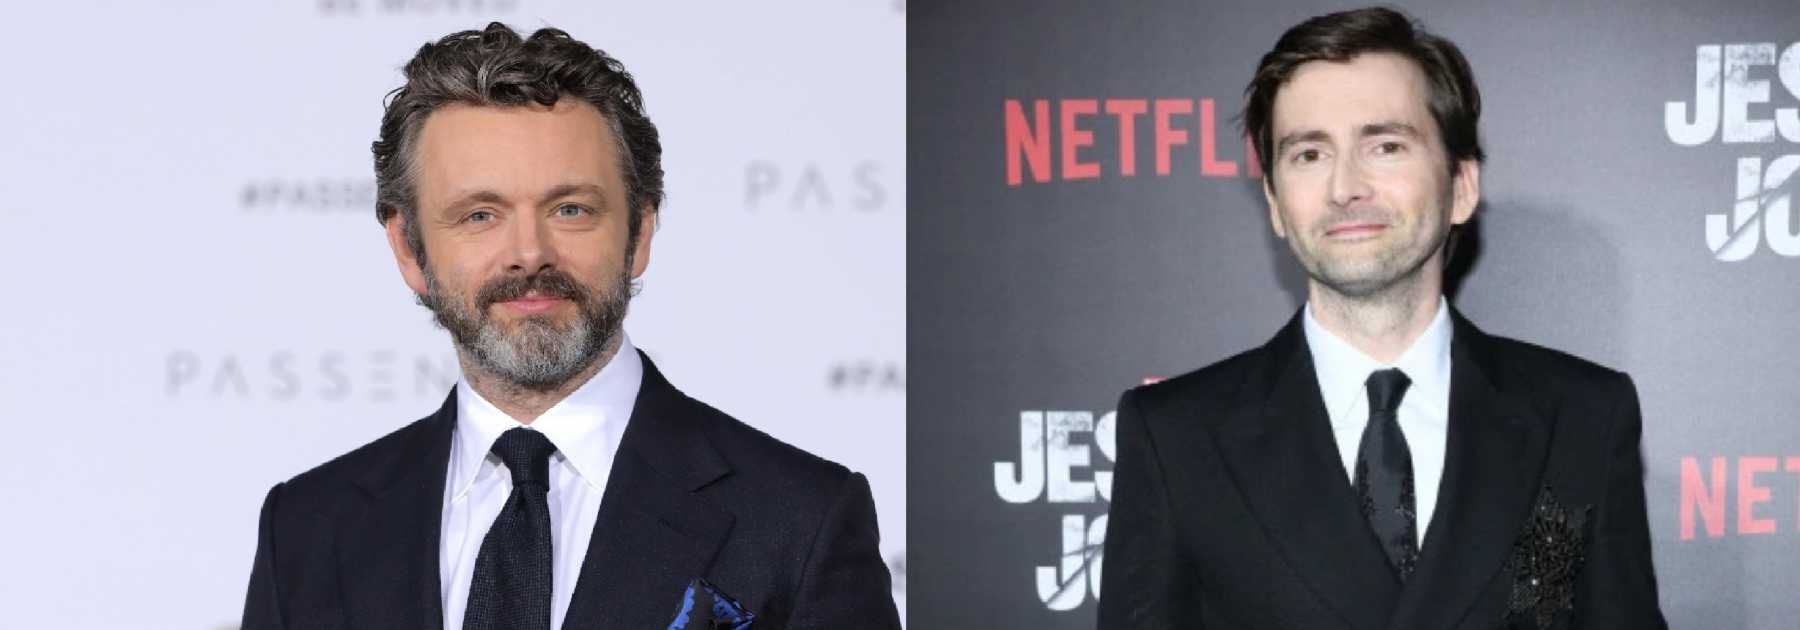 'Good Omens' Amazon Series Finds Its Leads: Michael Sheen And David Tennant | Good Omens